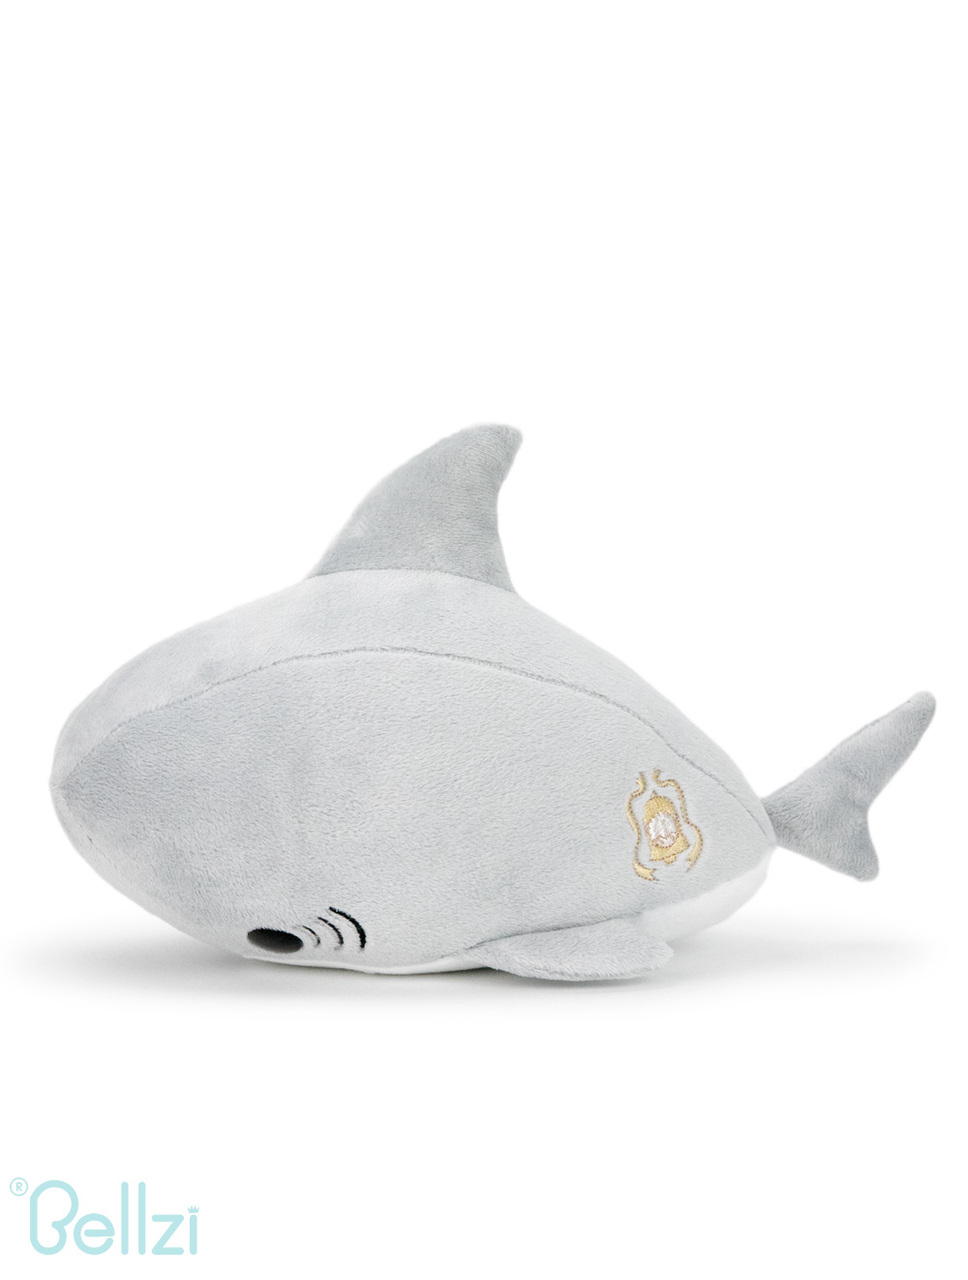 Bellzi Cute Shark Stuffed Animal Plush Sharki 12 Length